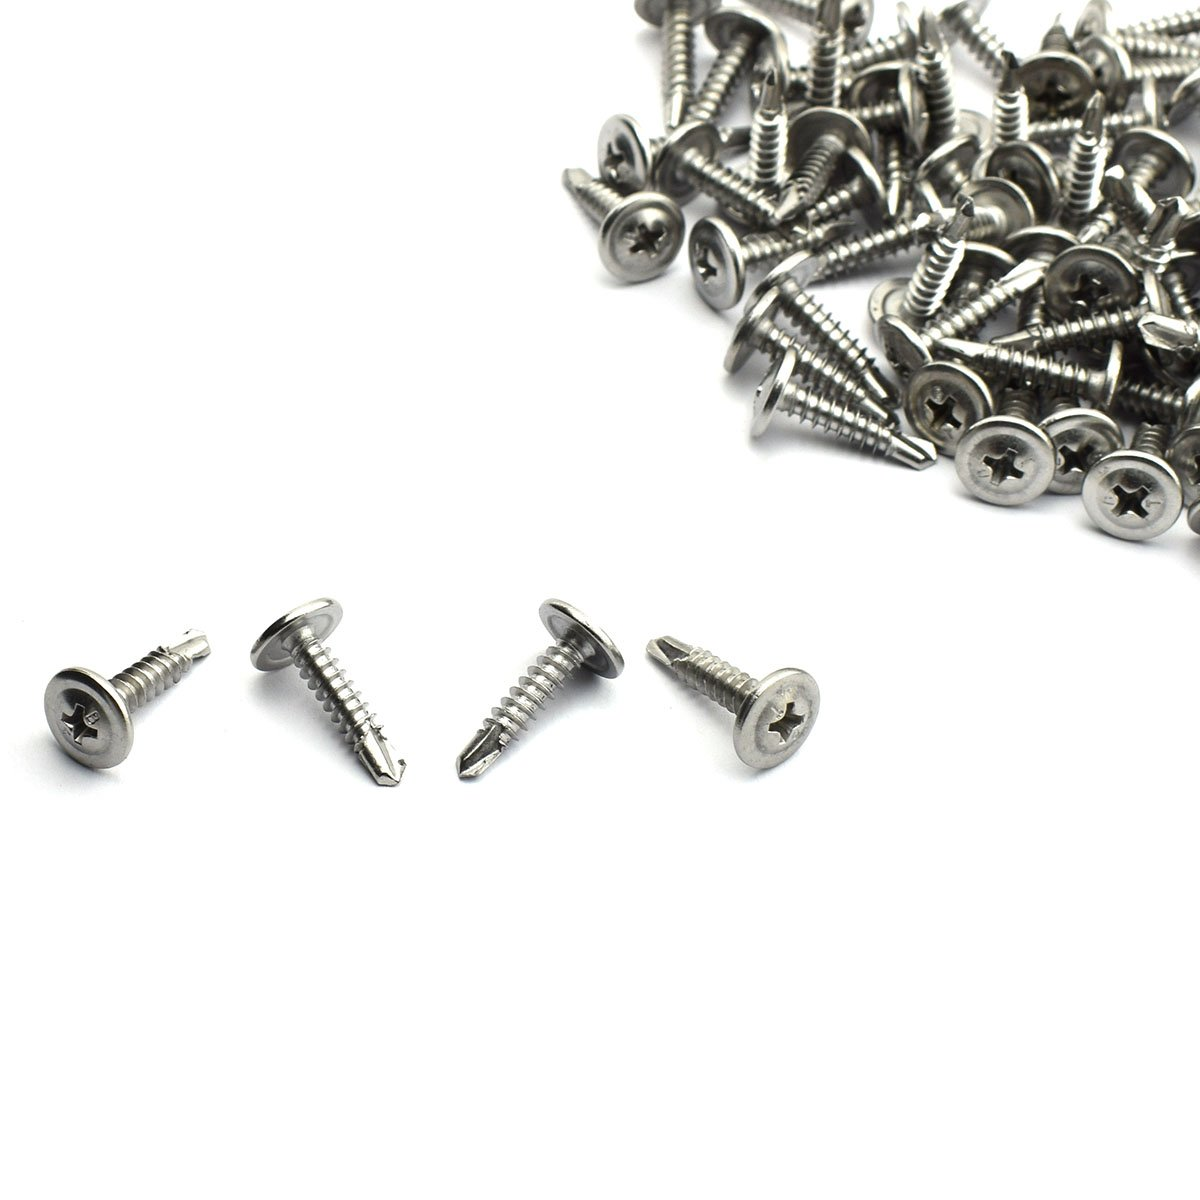 LQ Industrial 120pcs Self Driller Bolt 410 Stainless Steel Philips Drive Cross Round Flat Head Self Drilling Screws #8 3/4'' by LQ Industrial (Image #2)